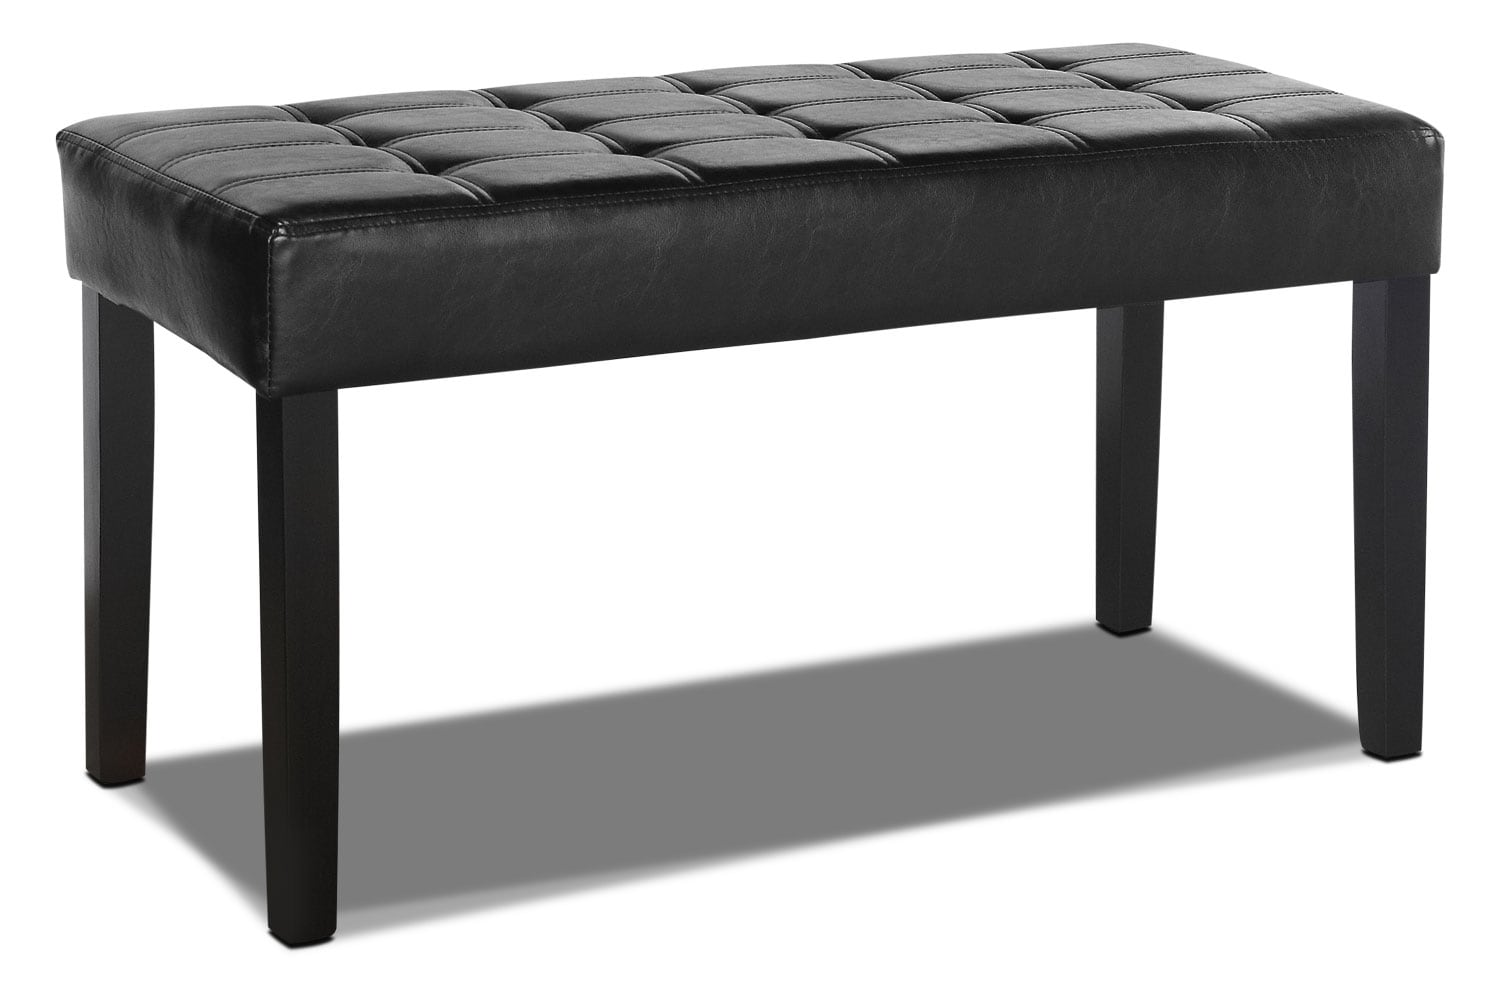 Cali Tufted Bench – Black